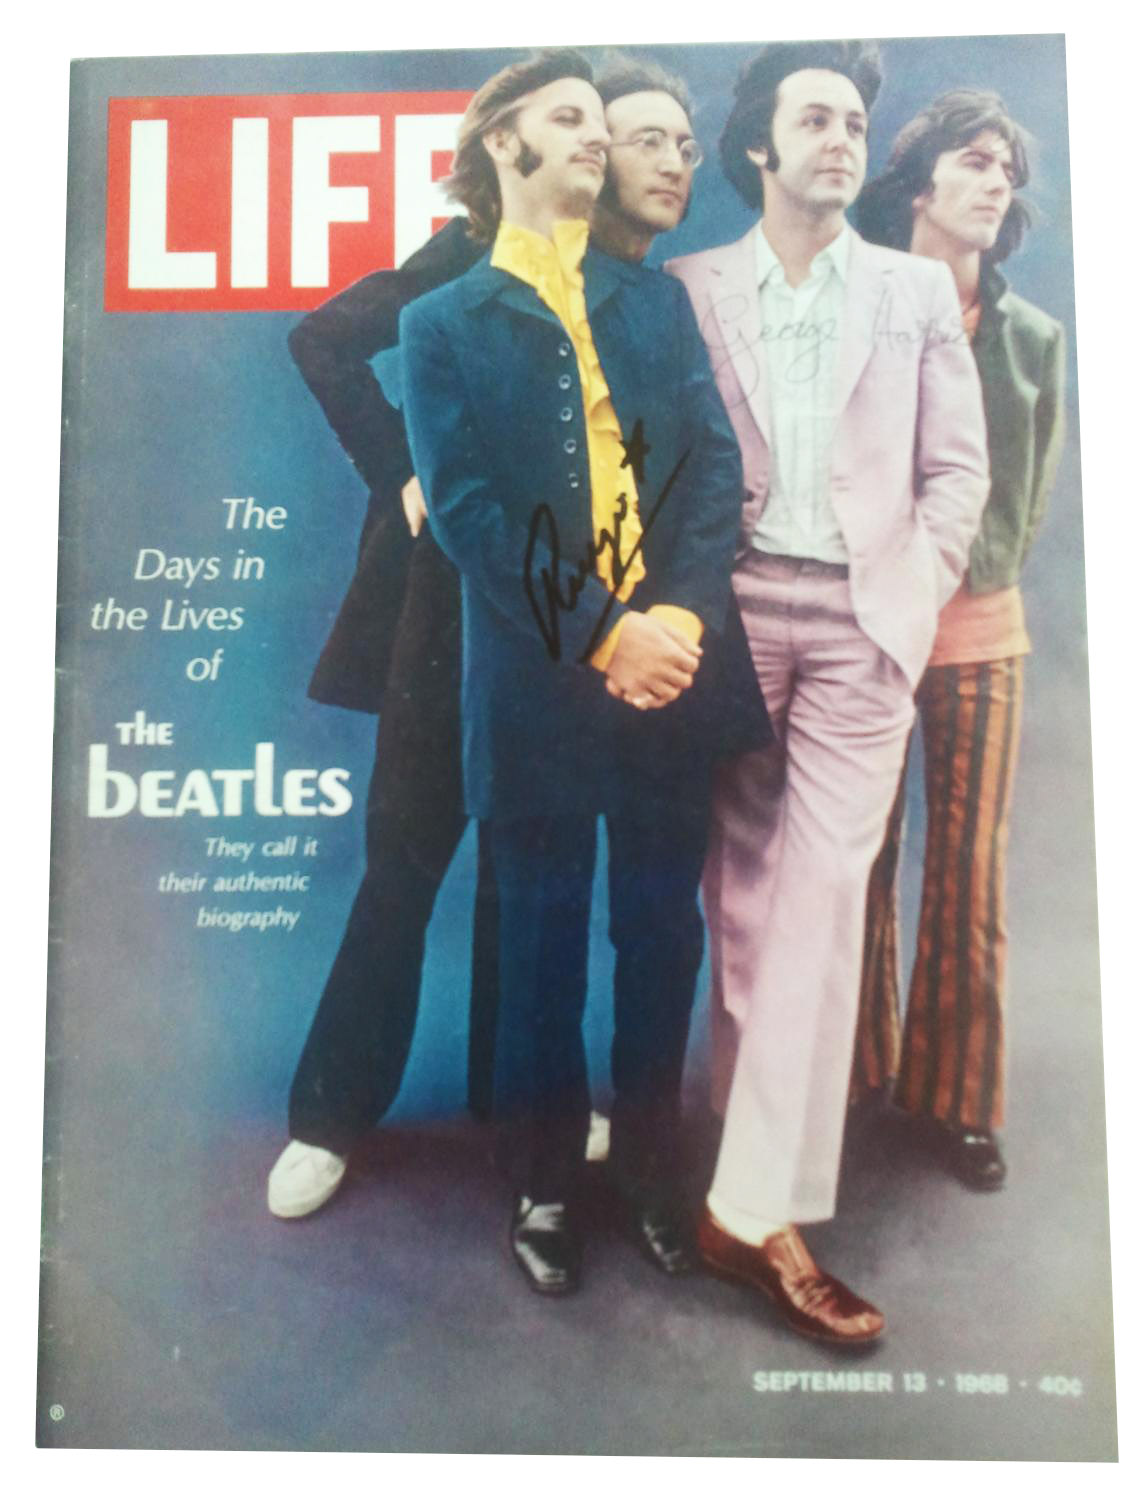 The Days in the Lives of the Beatles